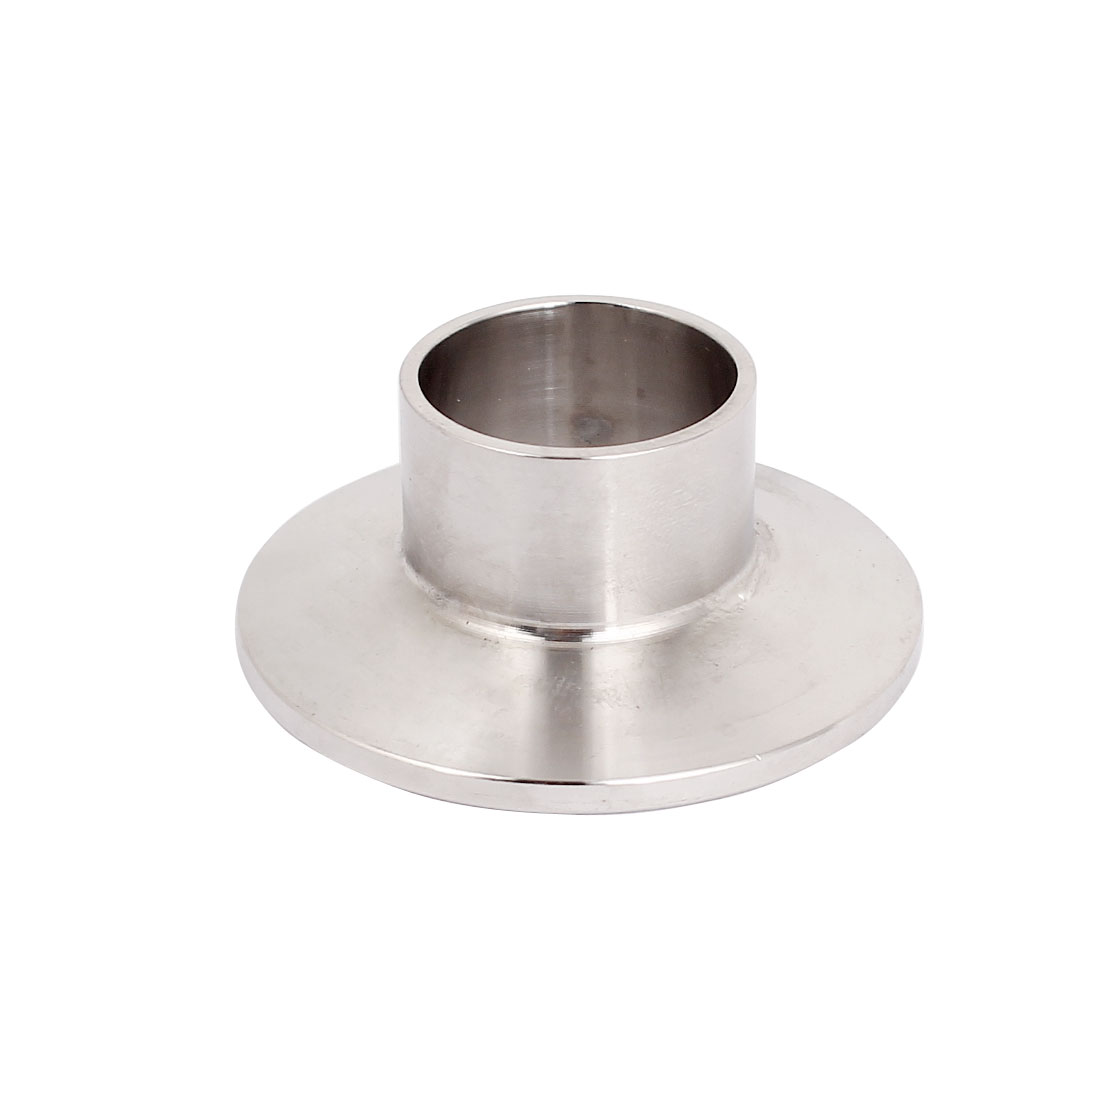 "SUS 316 Stainless Steel 25mm OD Sanitary Pipe Weld on Ferrule Fit 1.5"" Tri Clamp"